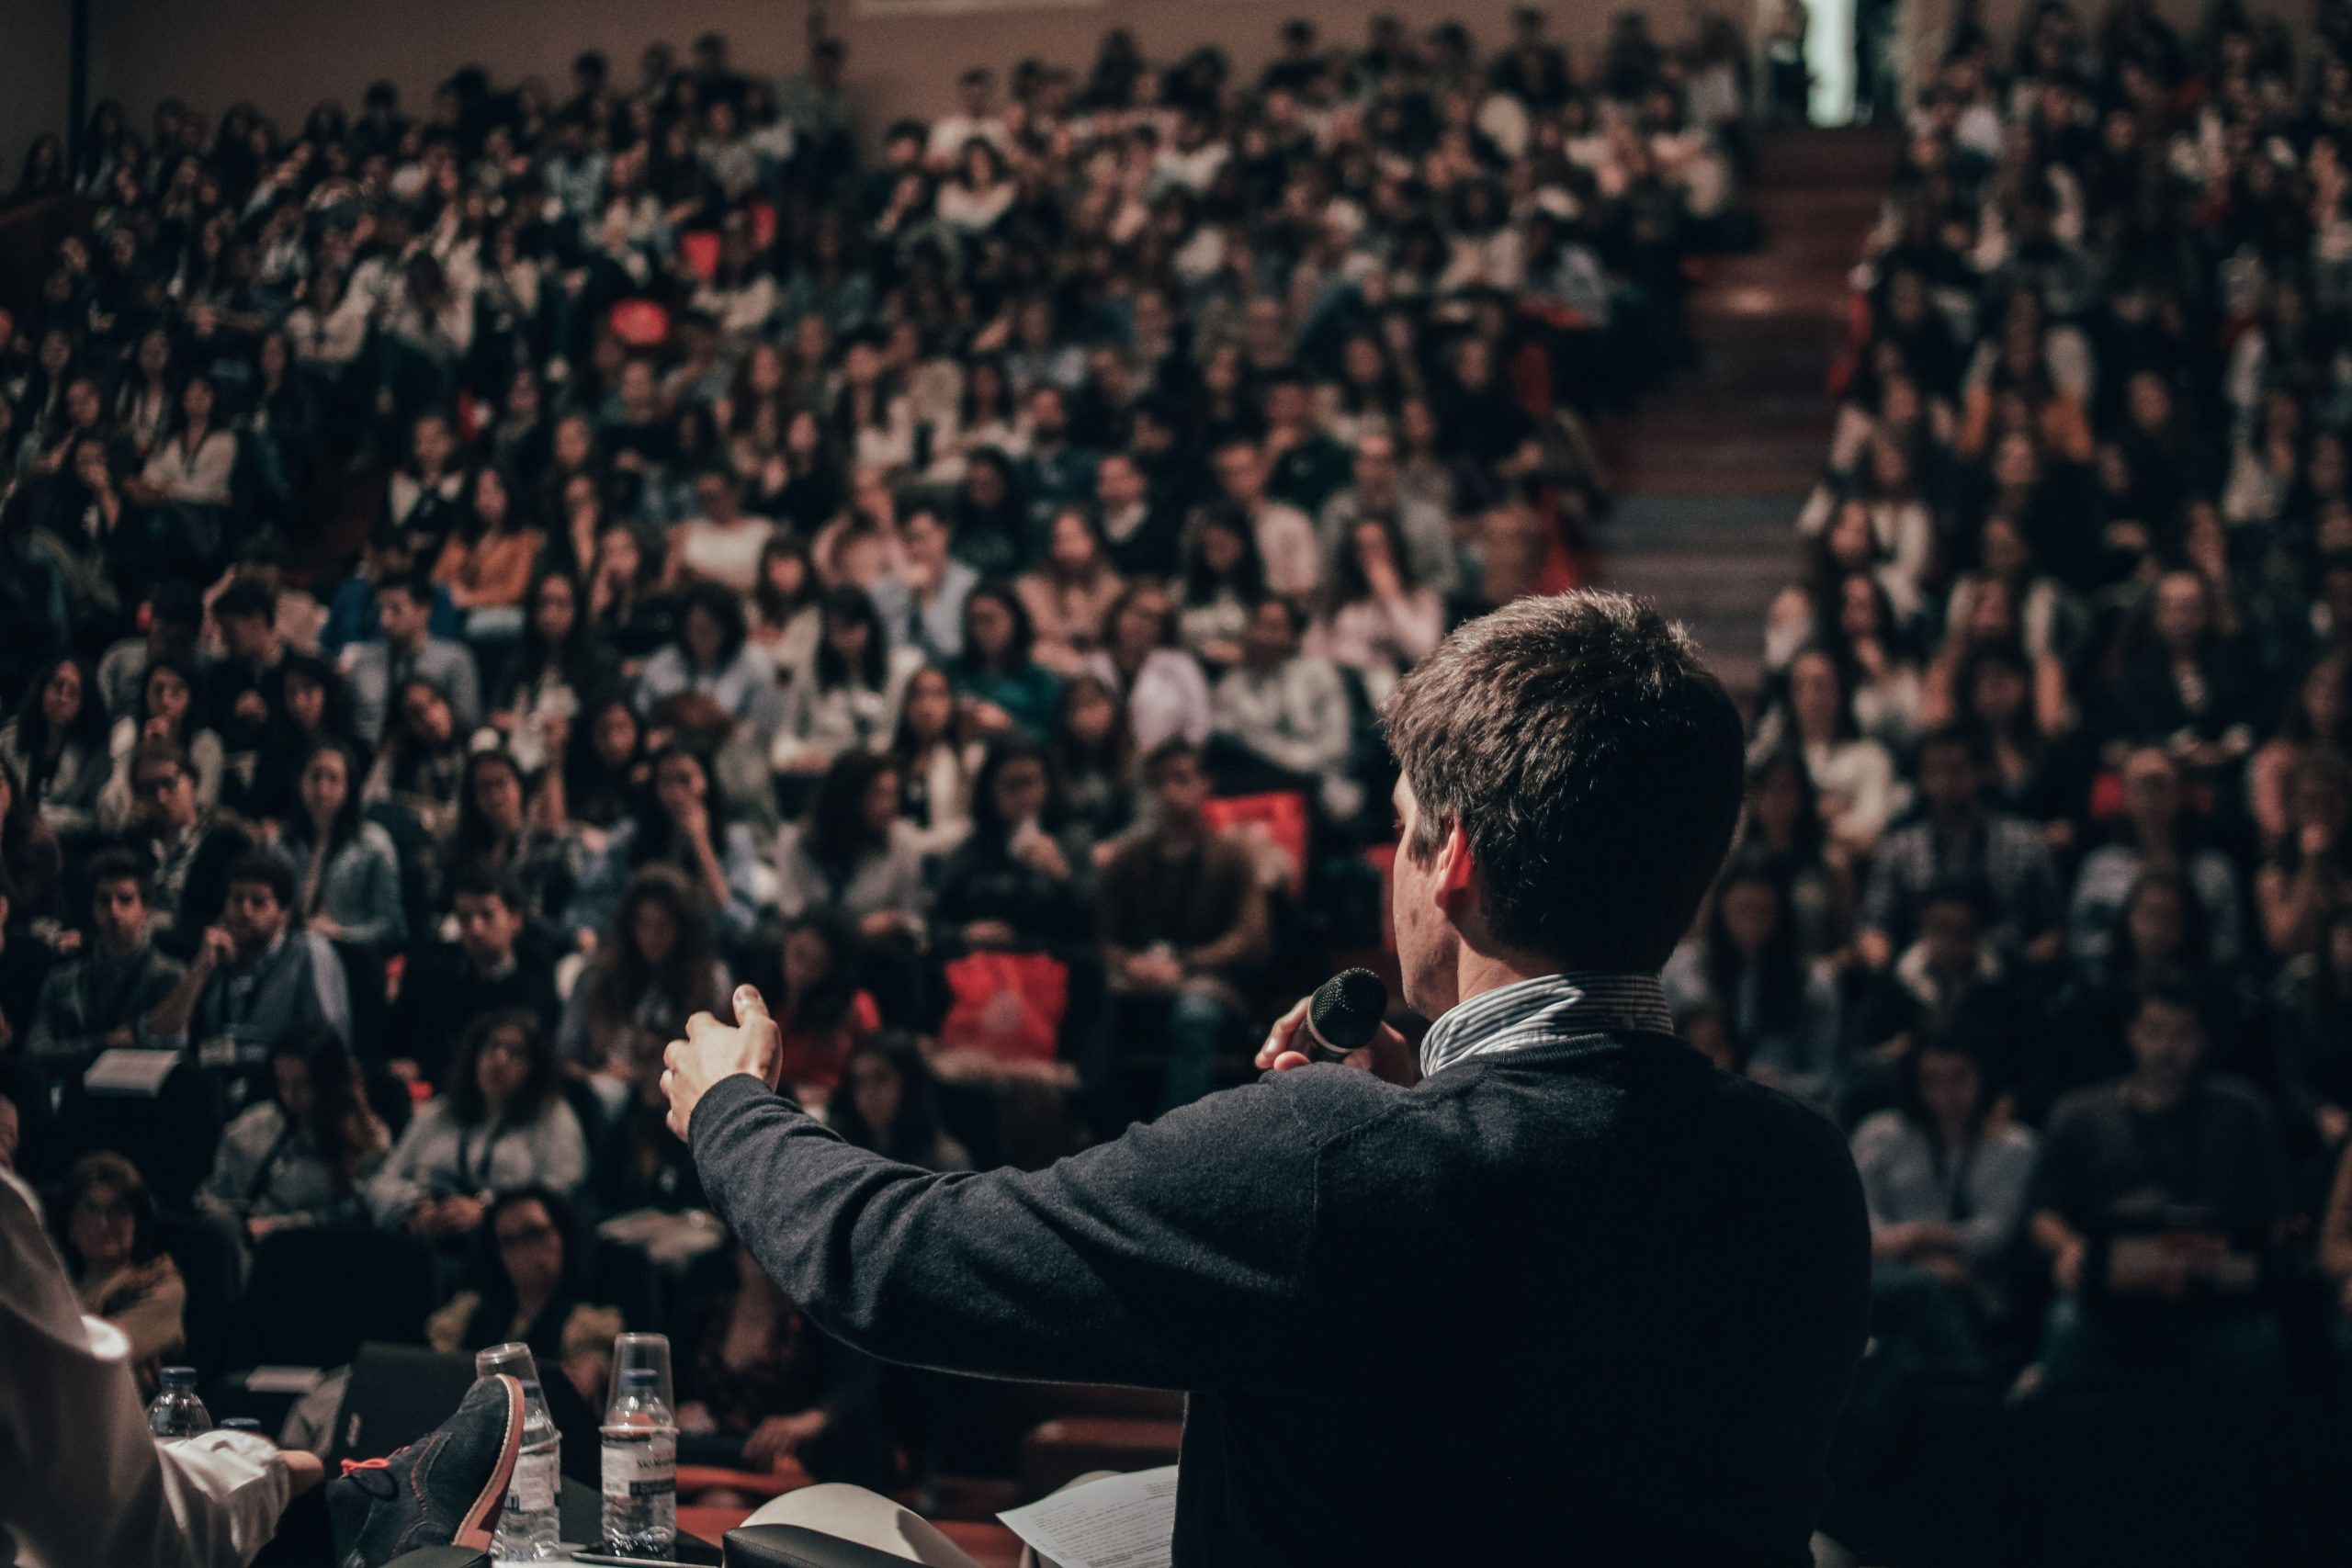 Five Things Every Event Moderator Should Have On Their Checklist